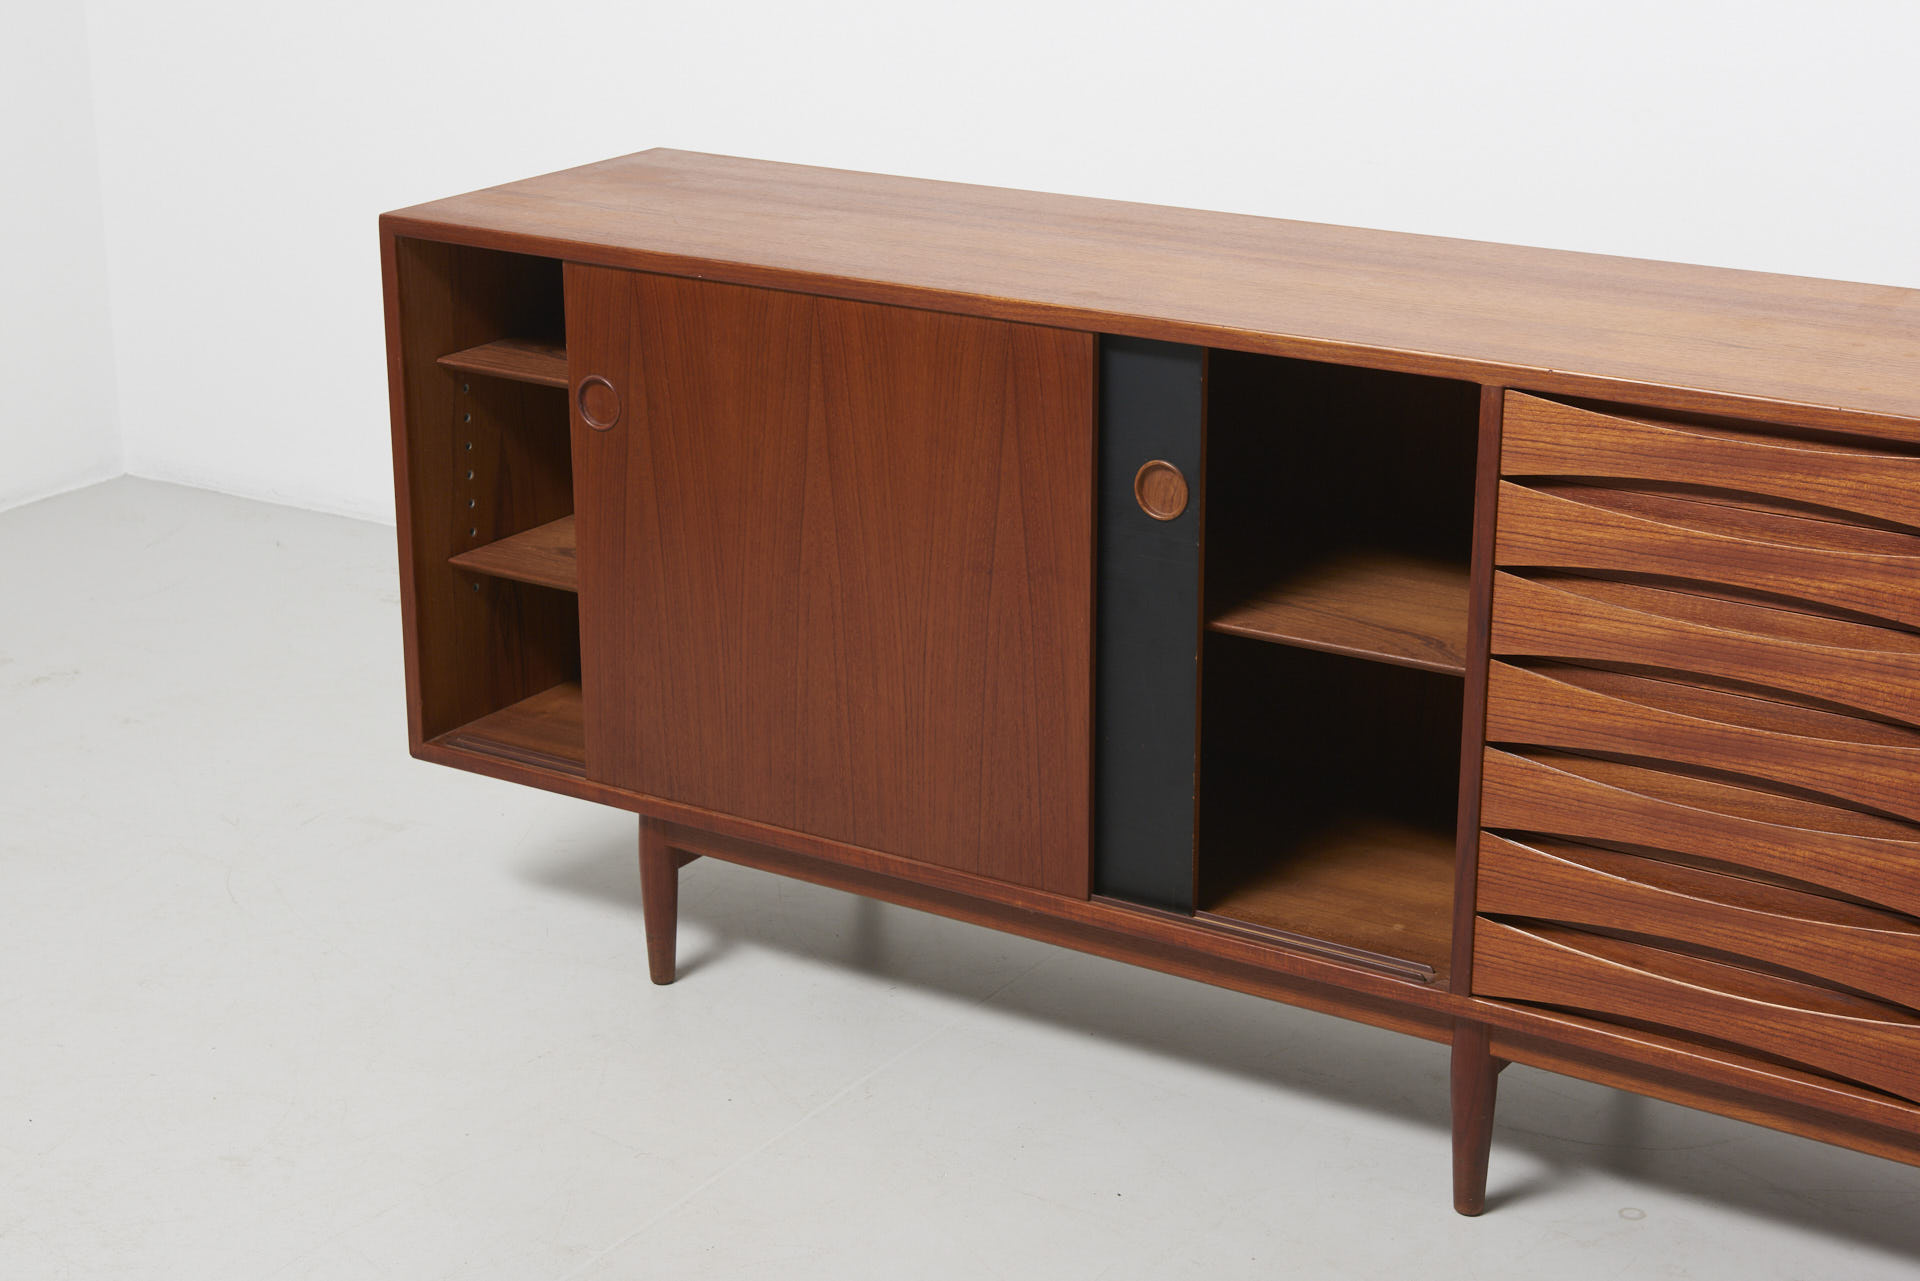 Horst Brüning A Large Sideboard Model 29a In Teak Arne Vodder — Archive